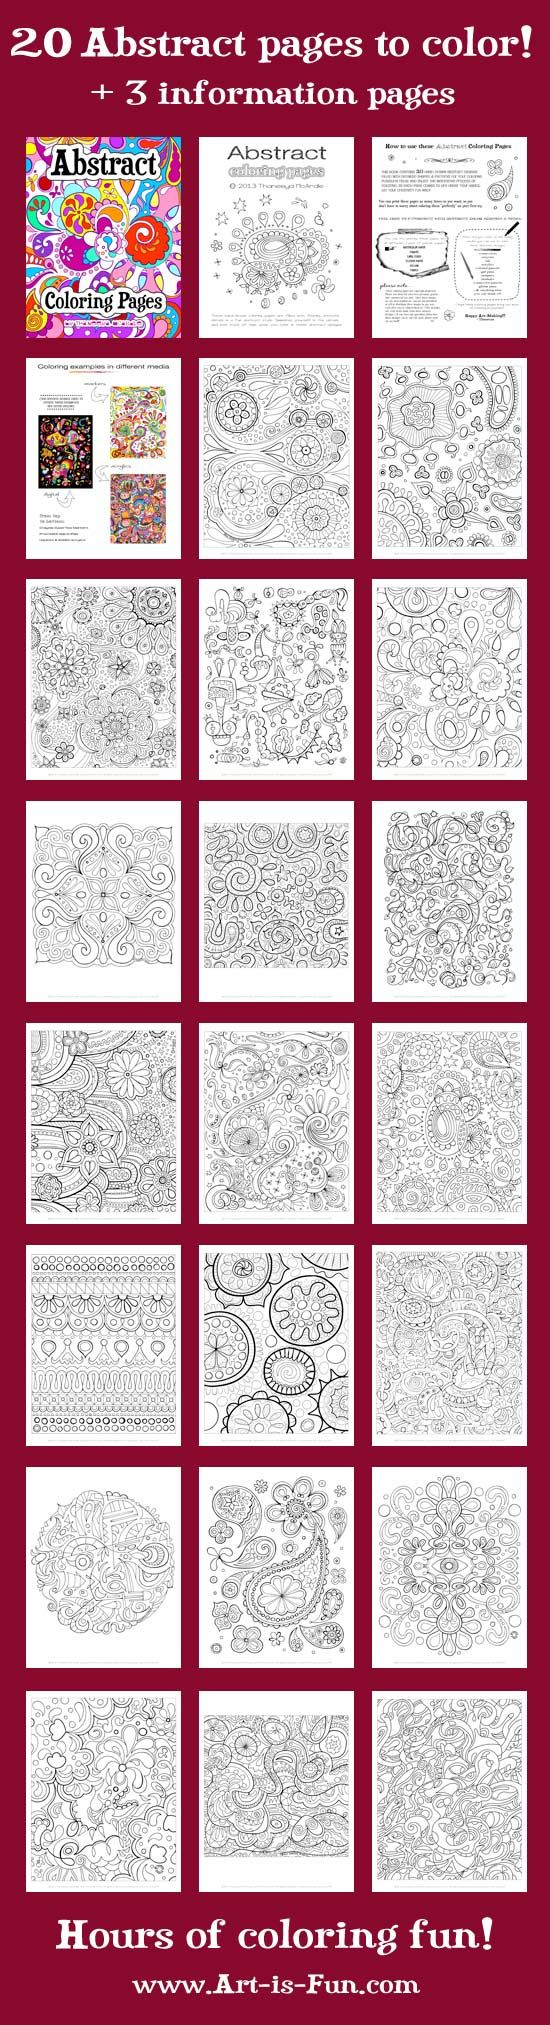 Free Printable Abstract Coloring pages- this is a fun way to teach about different kinds of art.